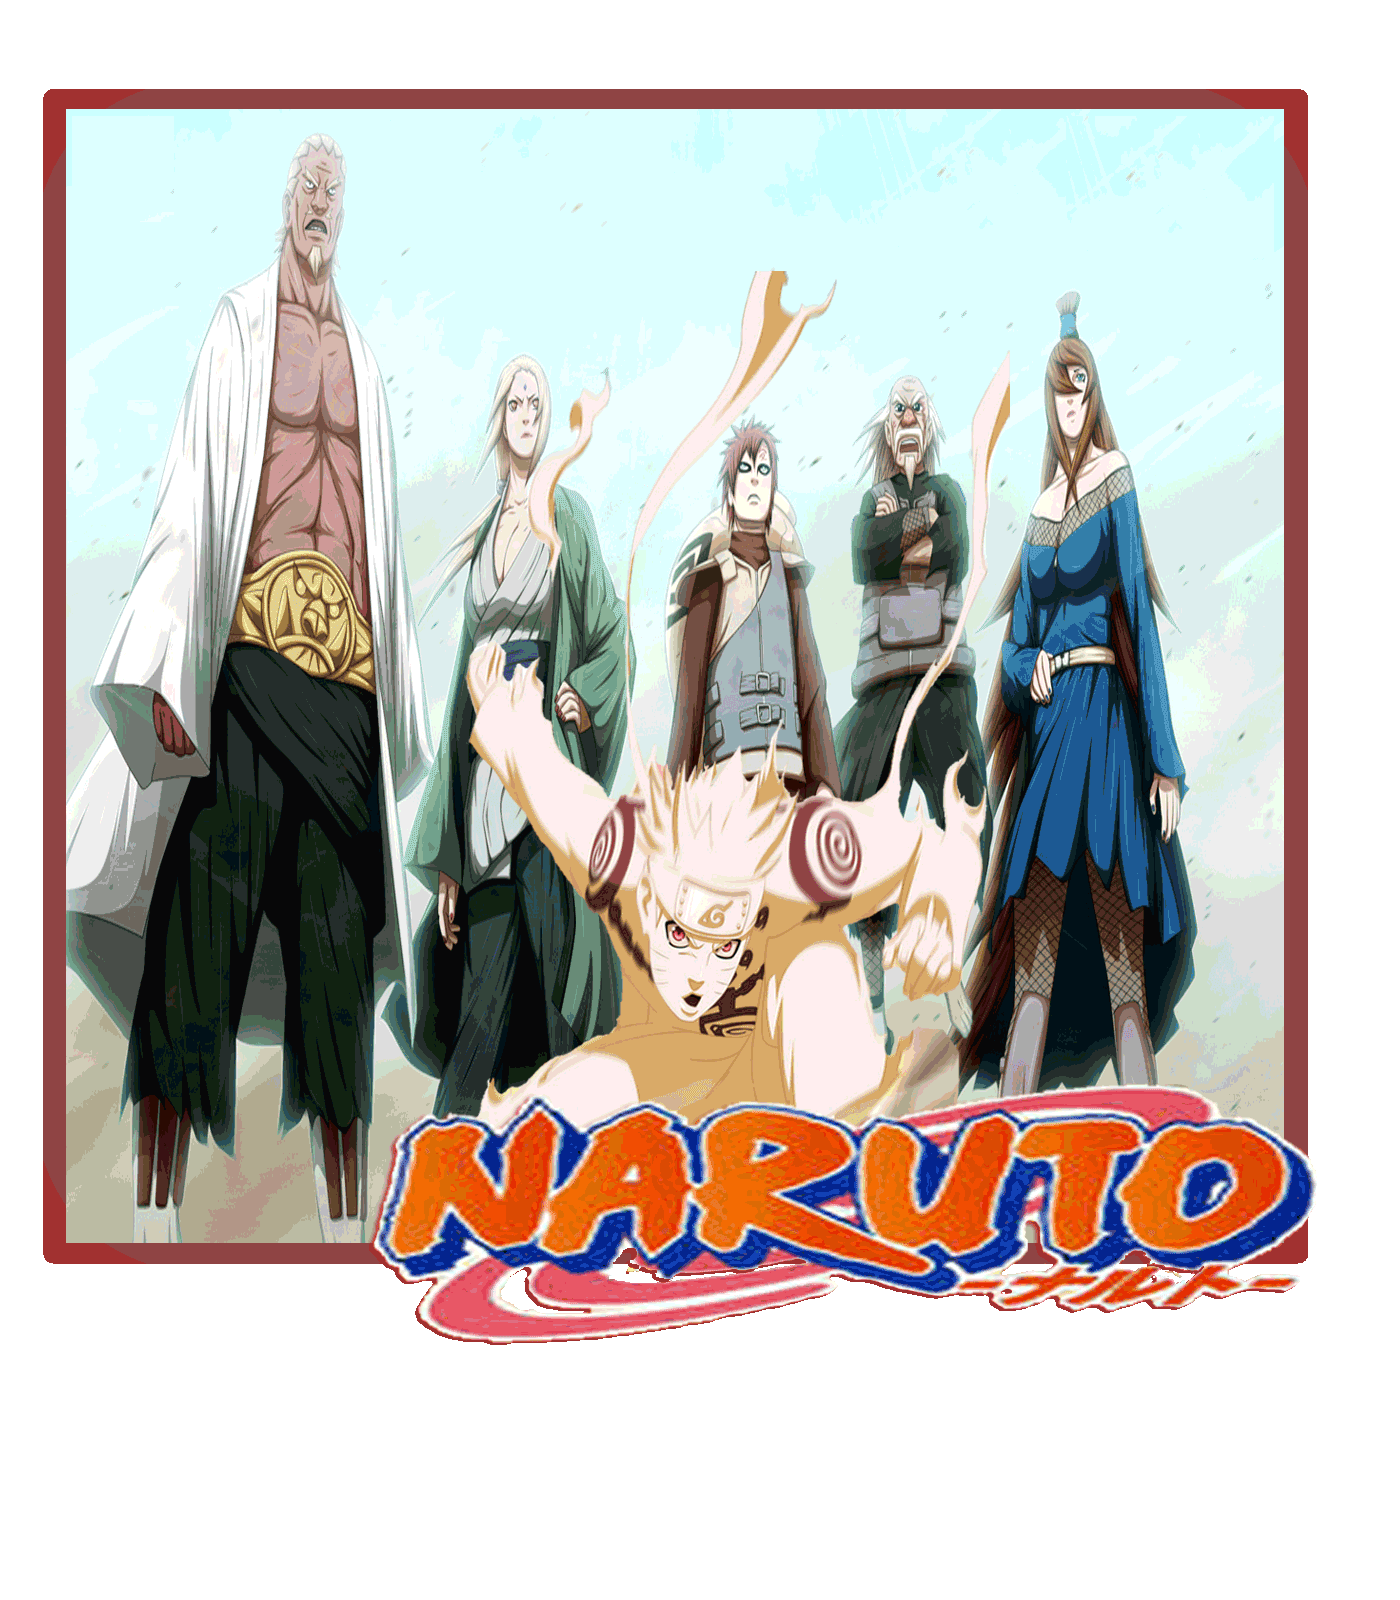 Naruto Shippuden Episode 348 - The New Akatsuki -